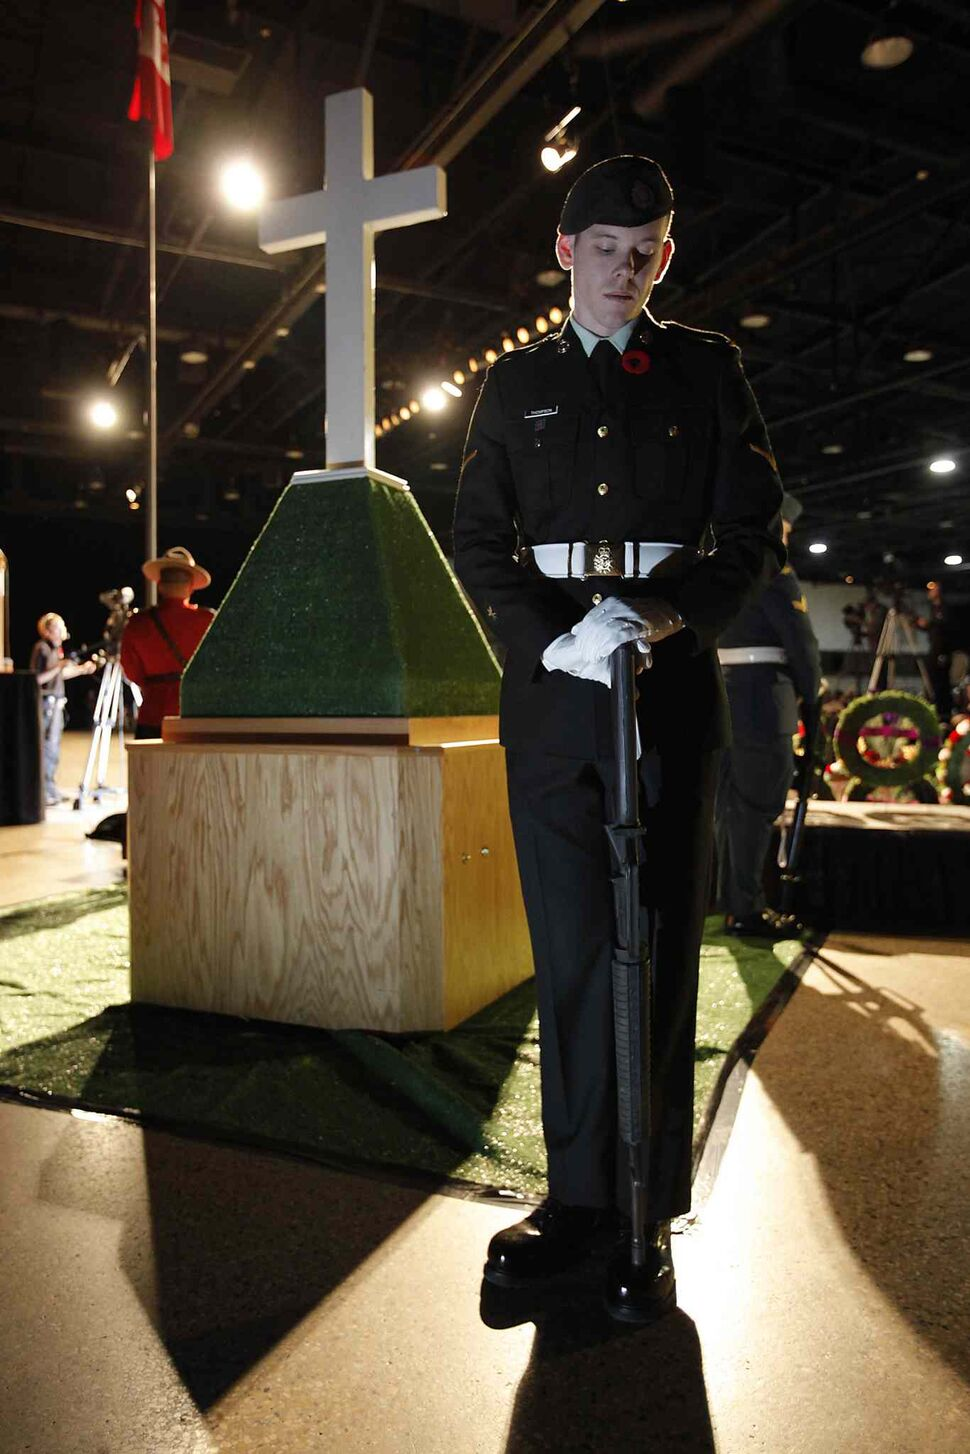 A soldier stands in silence during the Remembrance Day service at the RBC Convention Centre Winnipeg. (JOHN WOODS / THE CANADIAN PRESS)